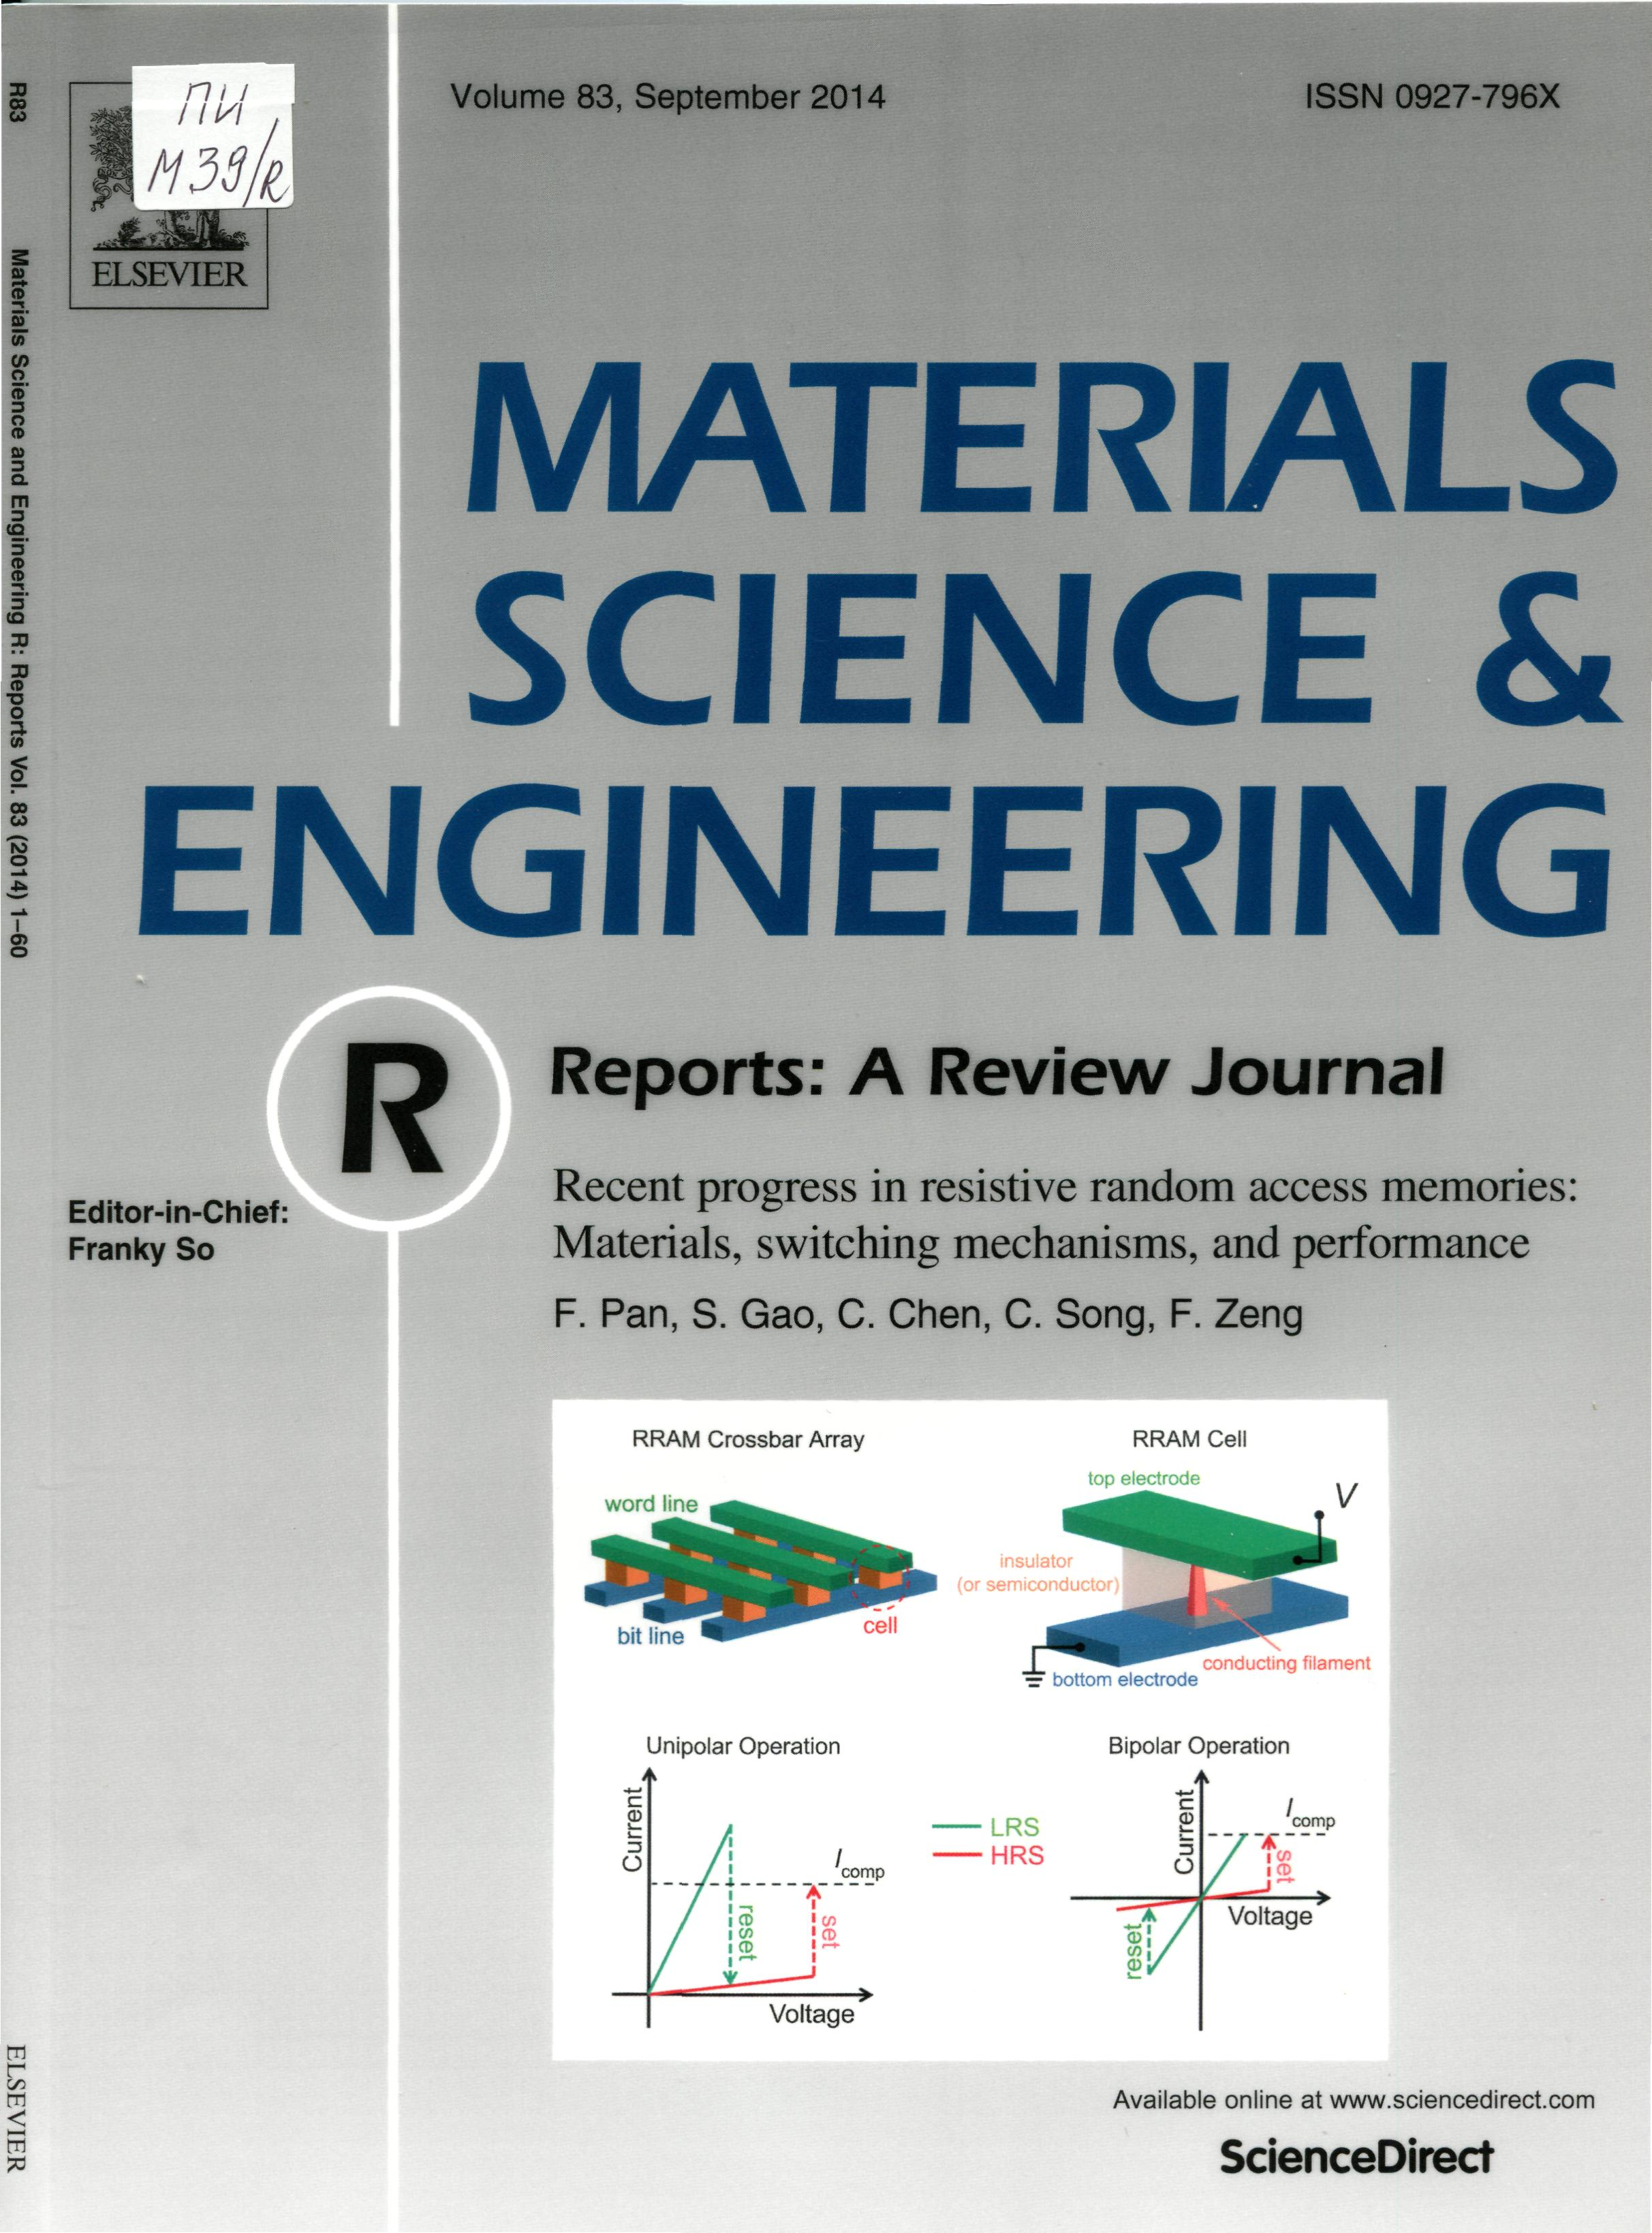 material science 2 essay The new sat offers free, high-quality practice including personalized study with khan academy, thousands of sample questions, and full-length practice tests.